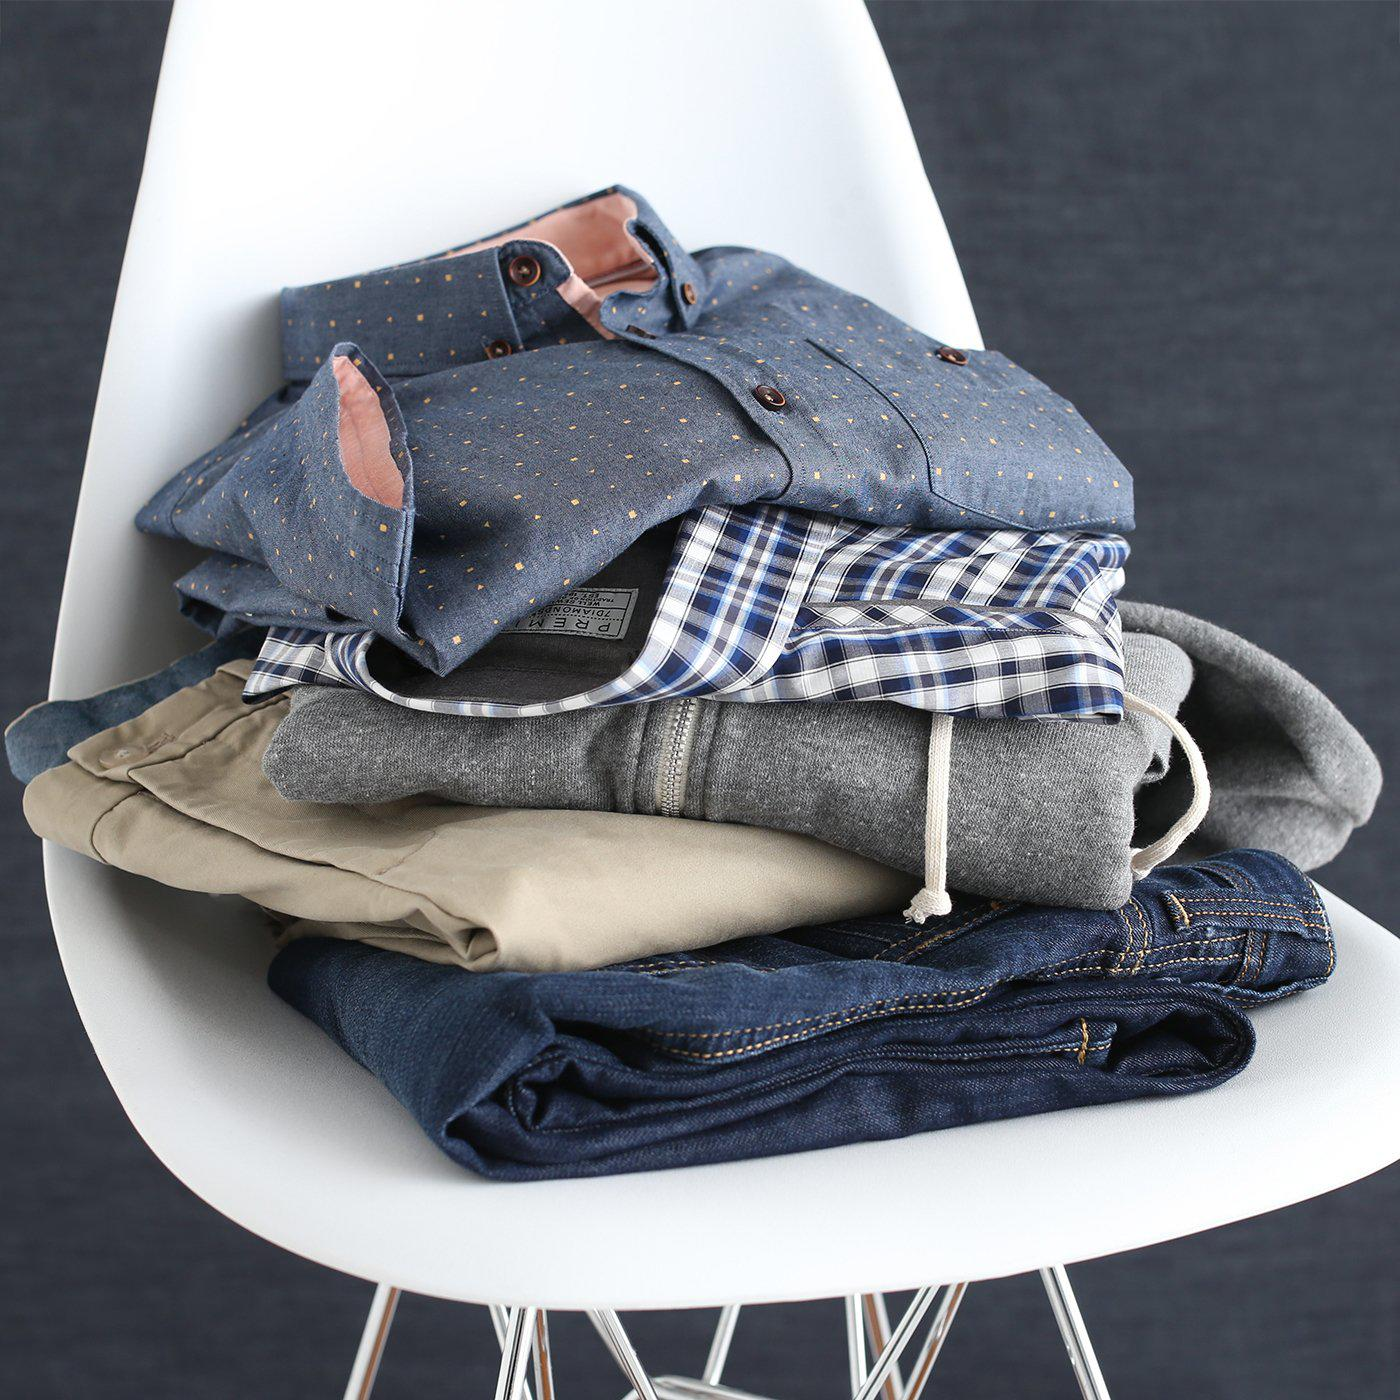 The popular women's clothing service has now expanded to a men's line! Check it out!